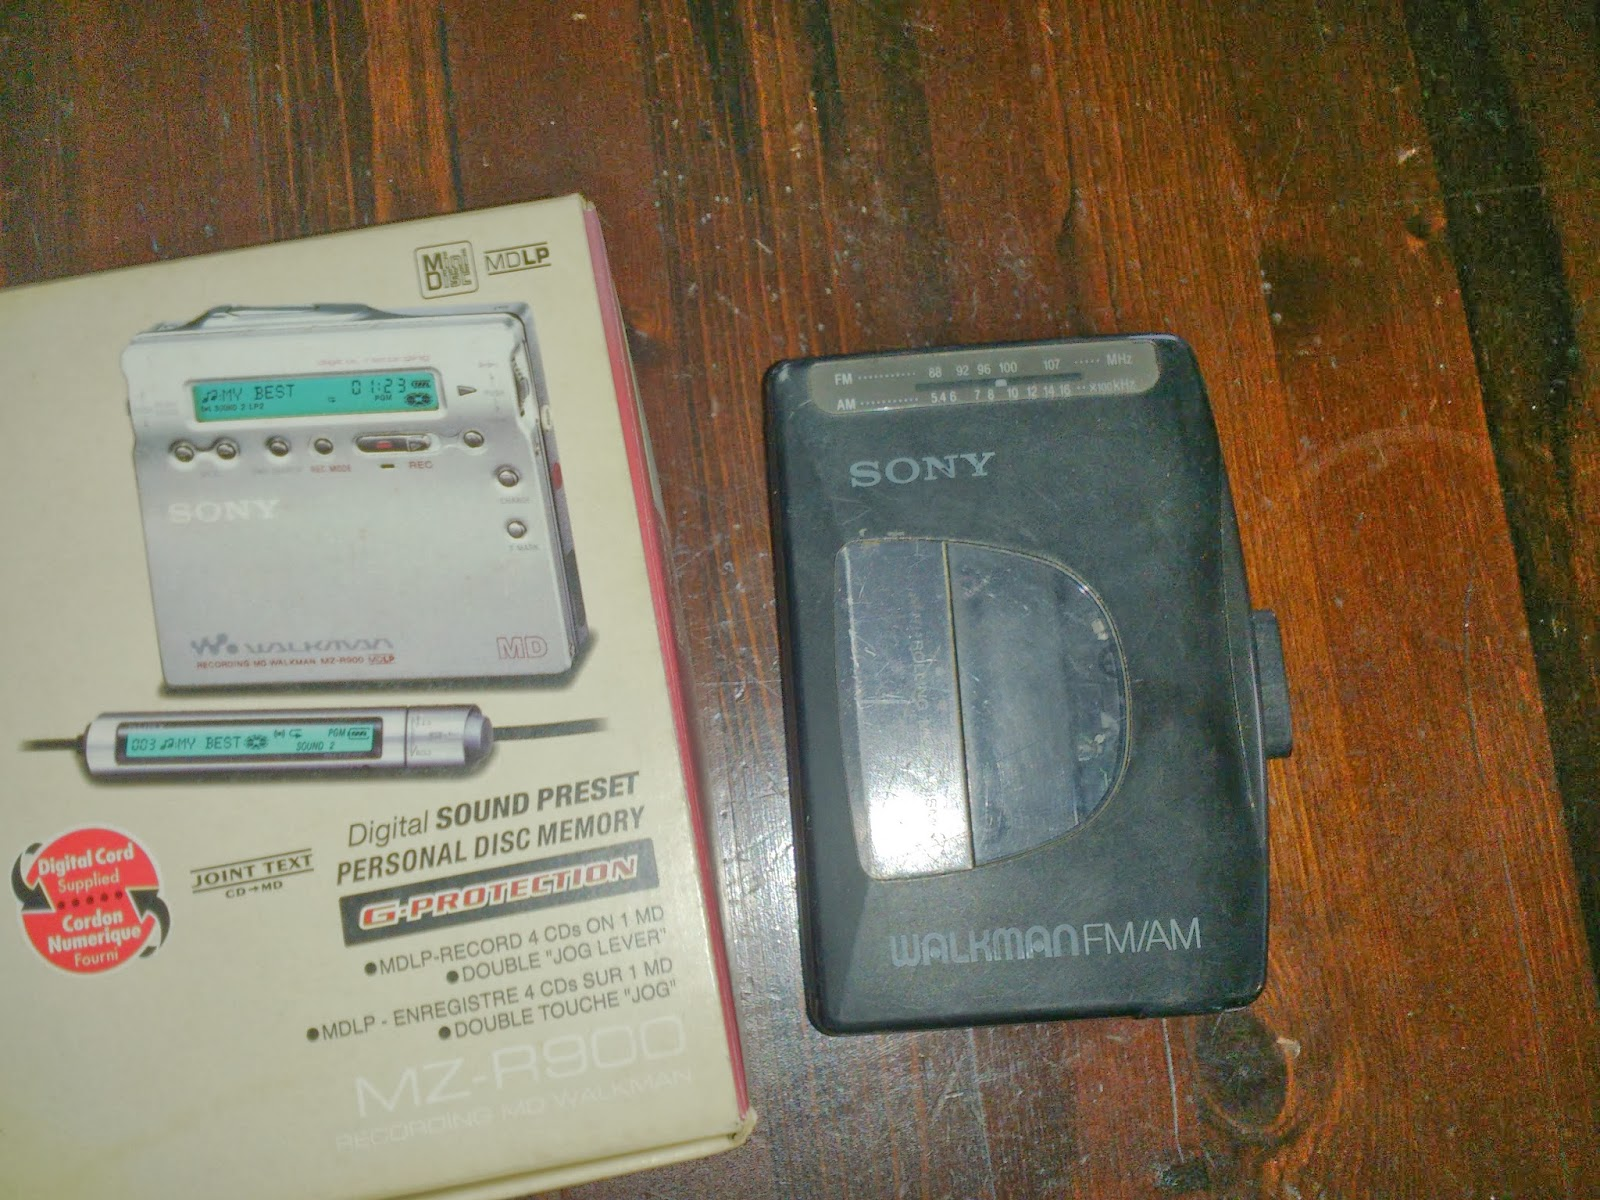 MD player and cassette player